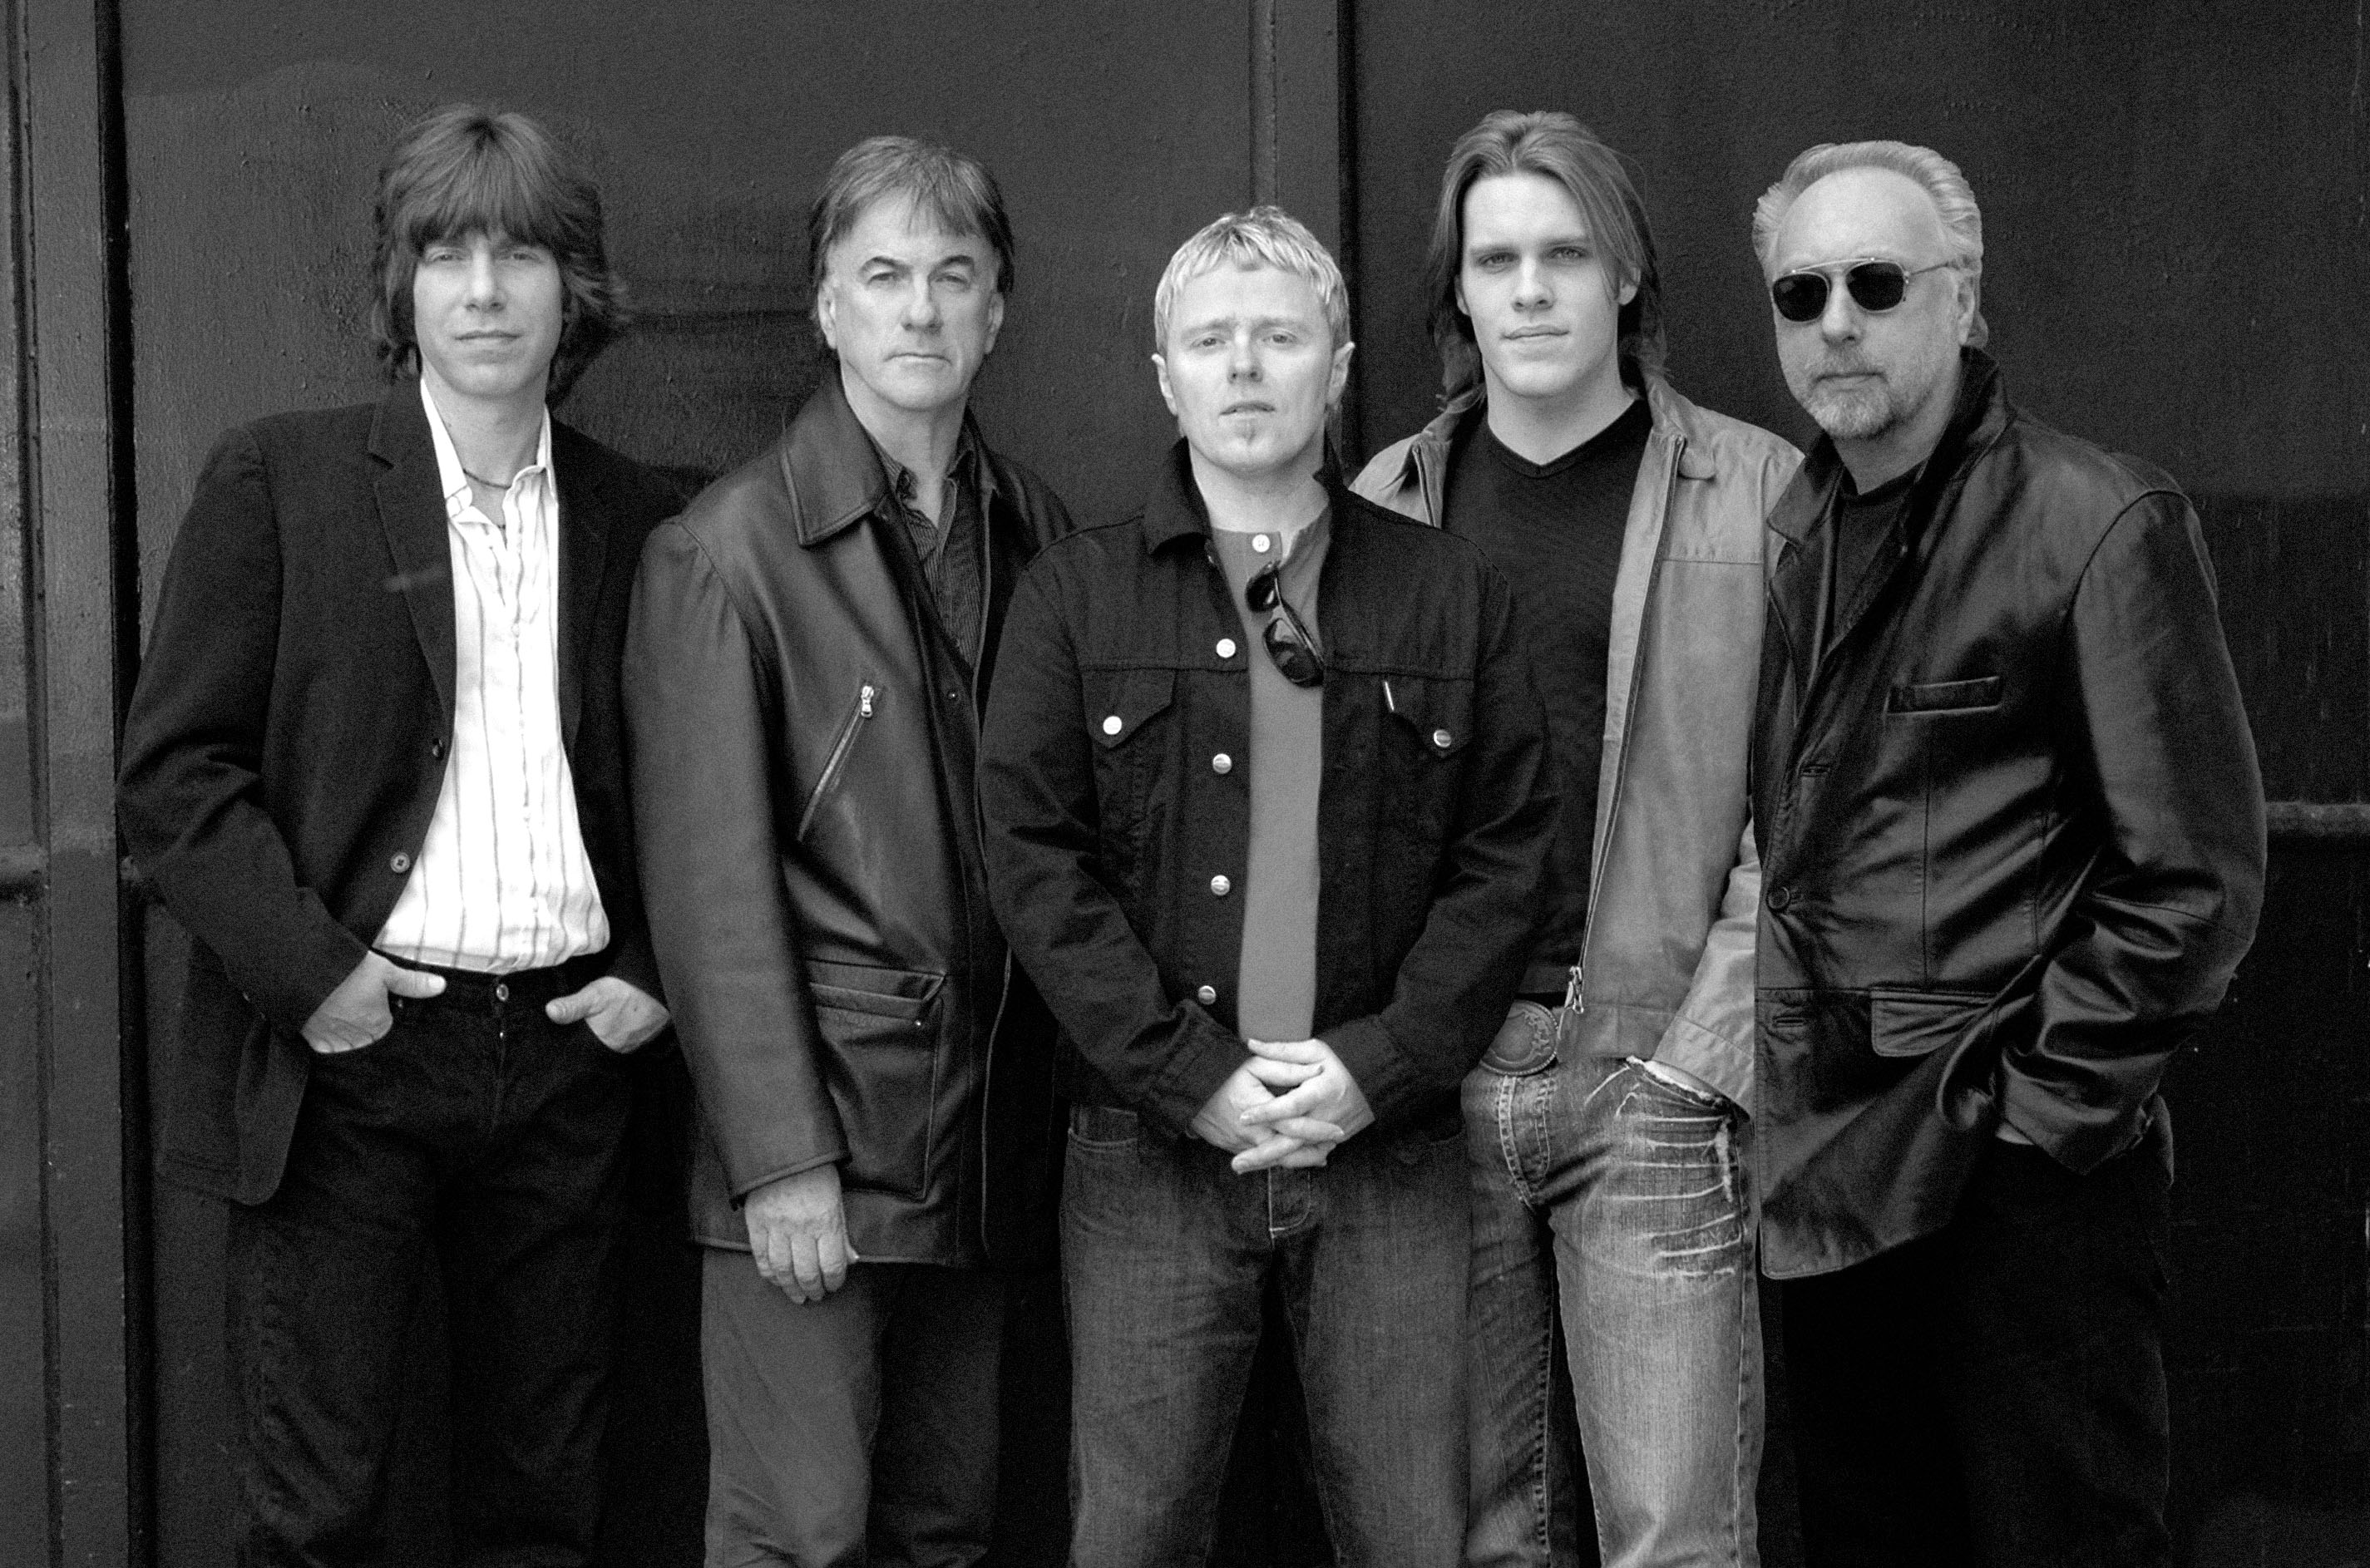 The Yardbirds 2005 promo photo